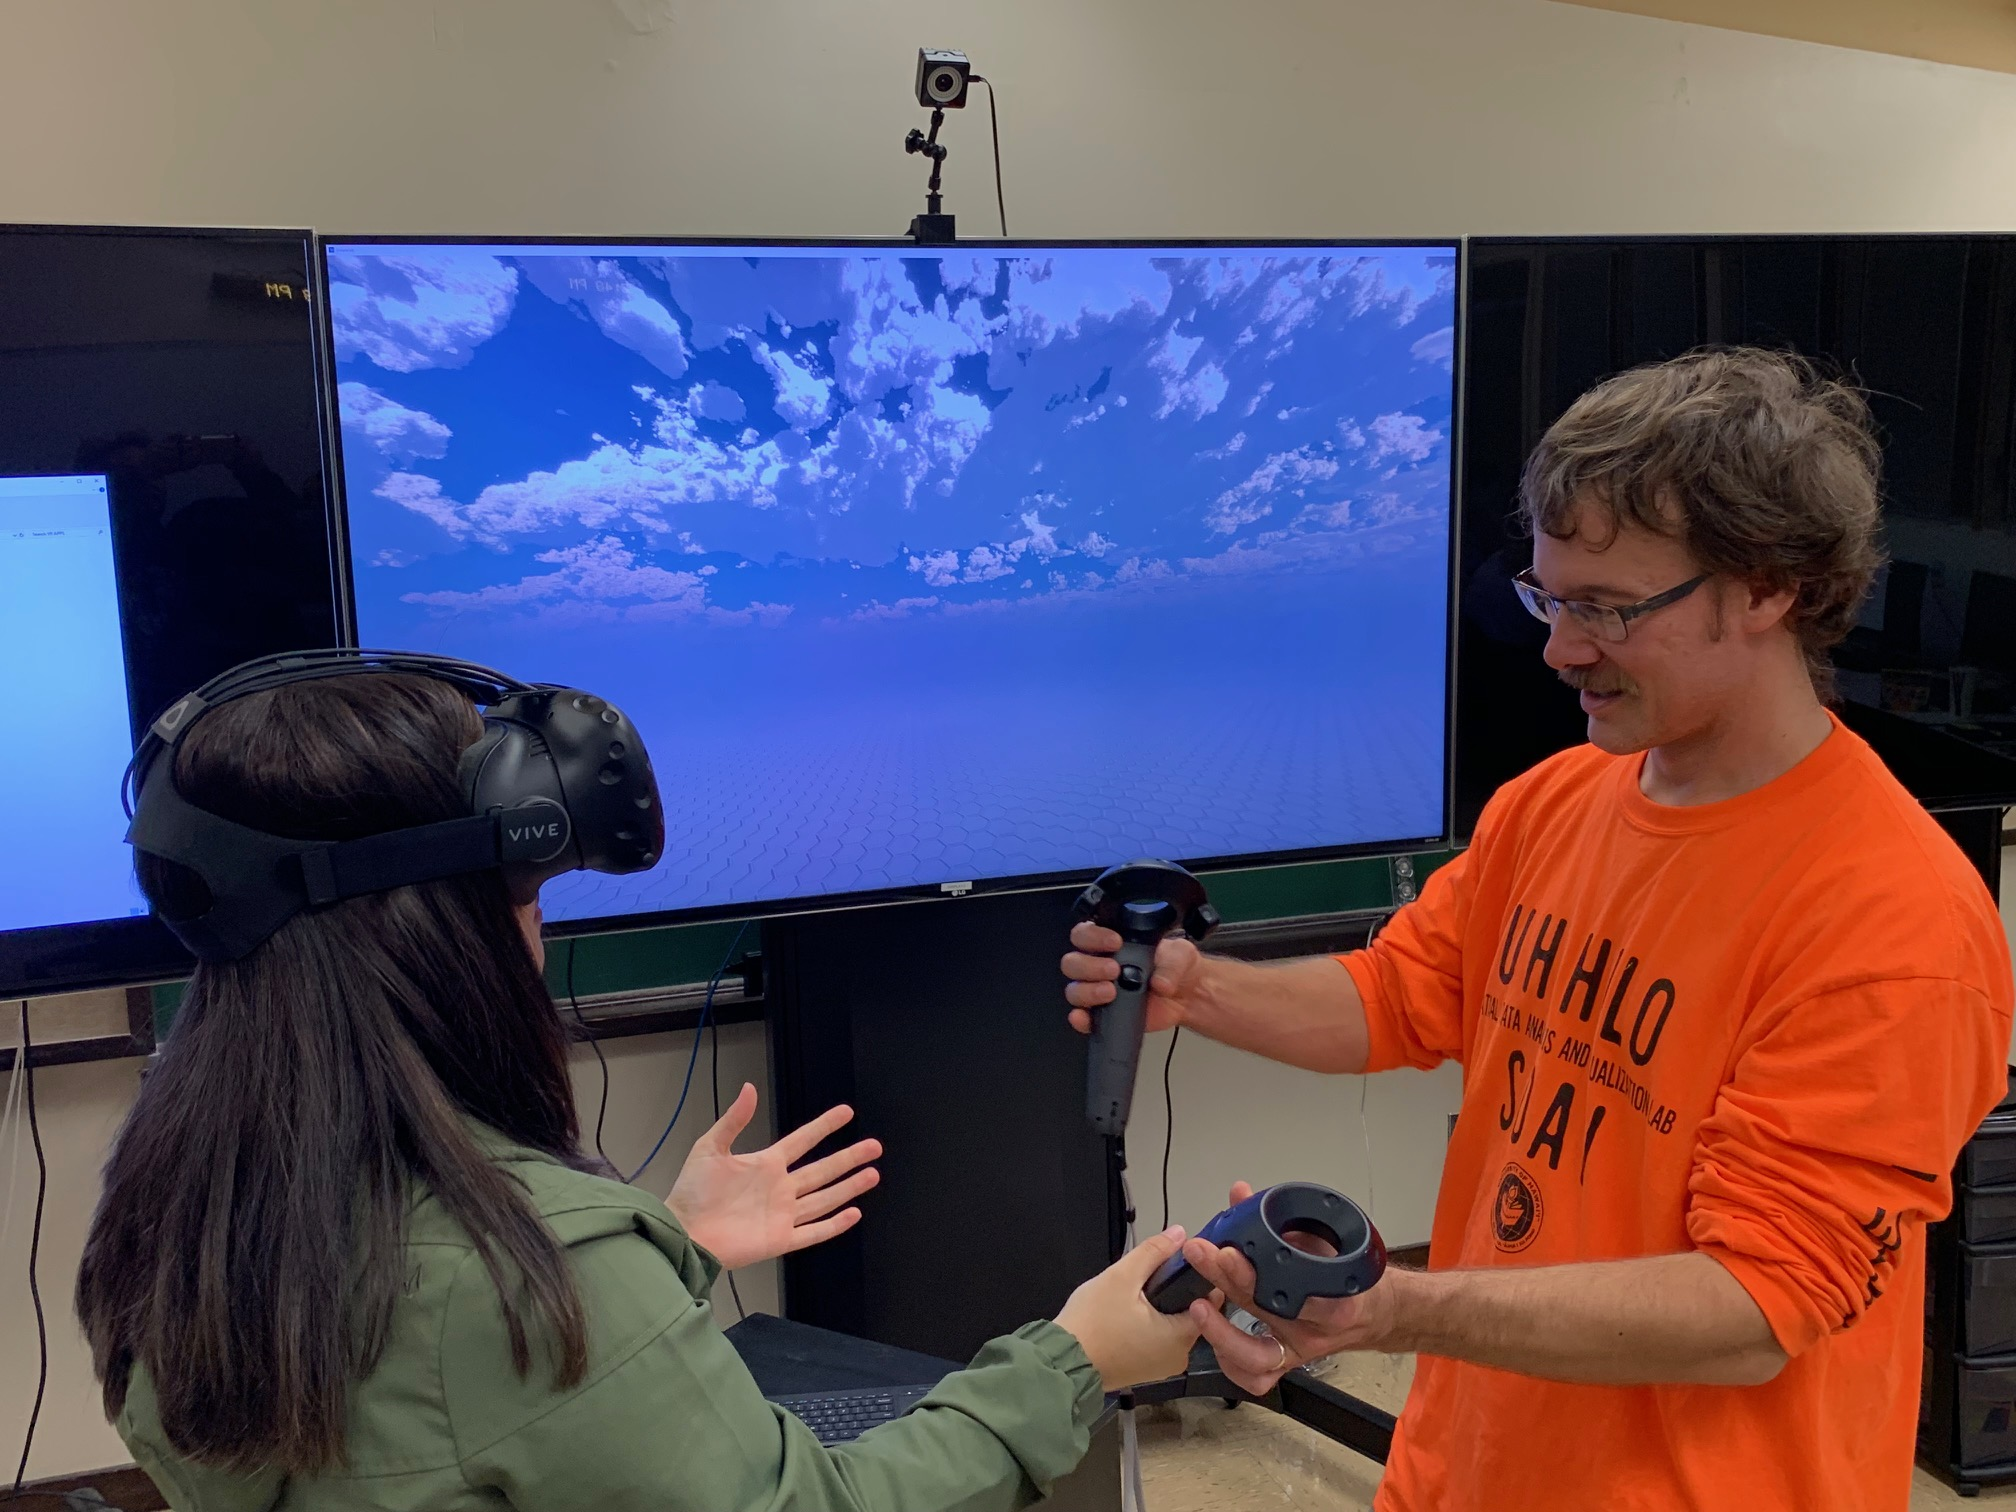 Prof. showing student how to use the visualization equipment.